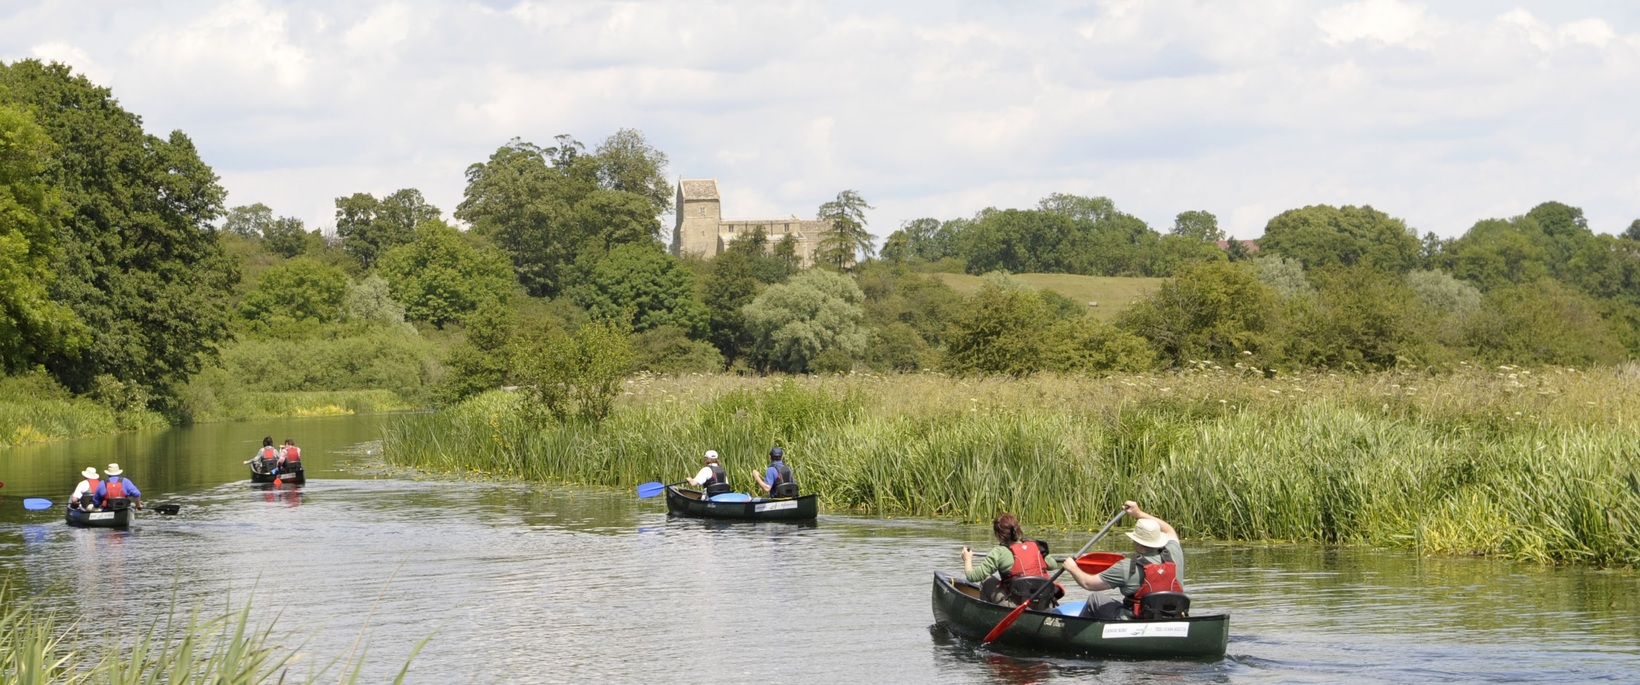 B&B Canoeing Short Breaks - Up To 4 Days